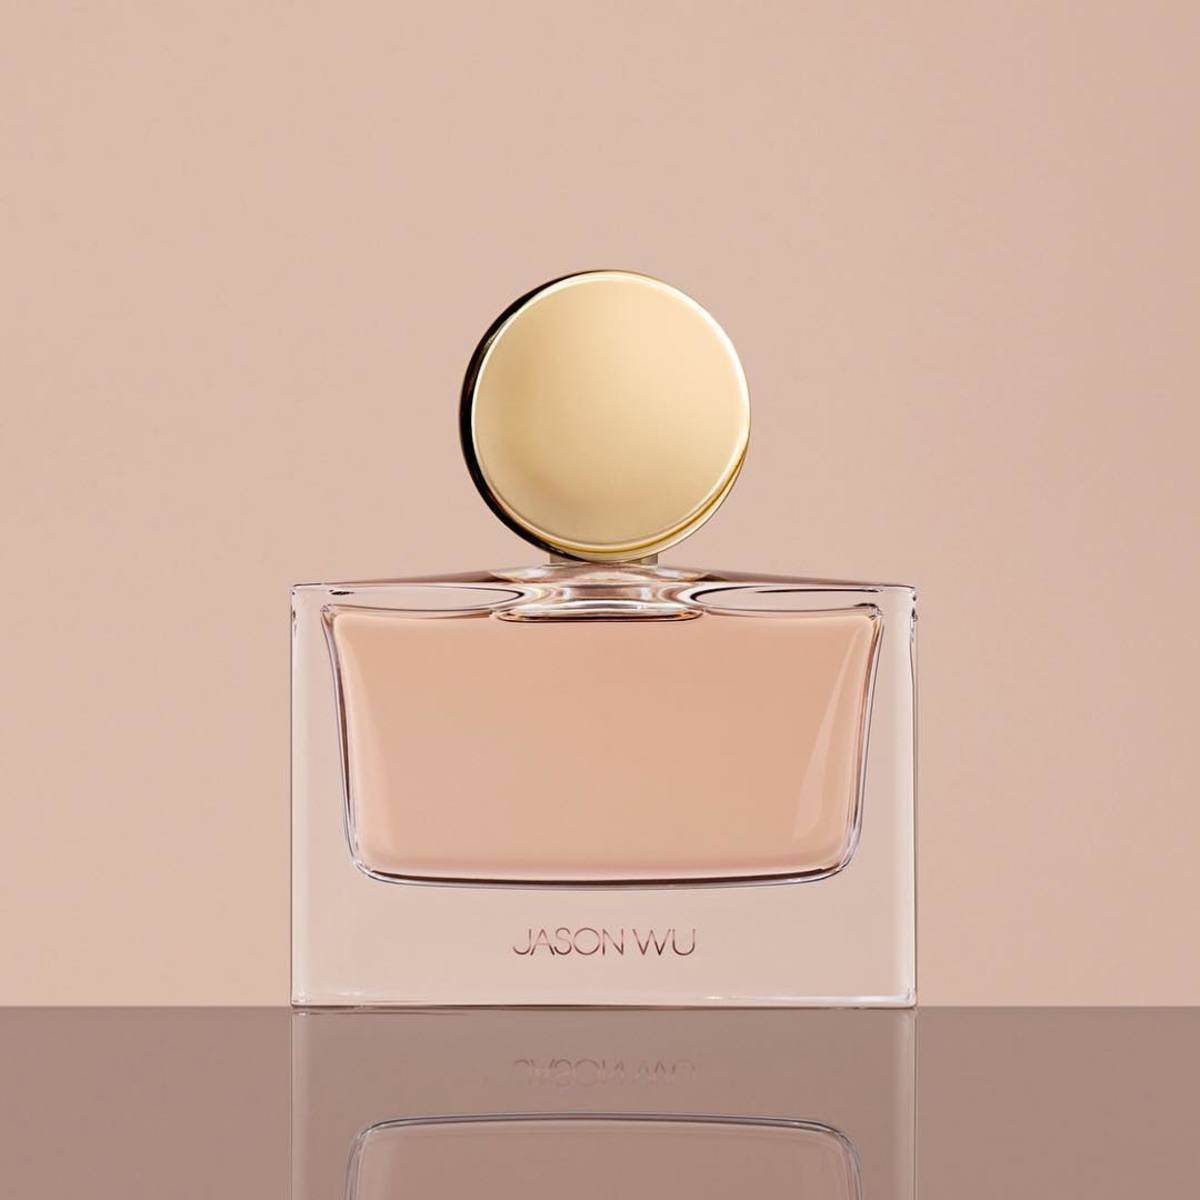 Jason Wu's first fragrance, Jason Wu. Photo: Courtesy of Jason Wu